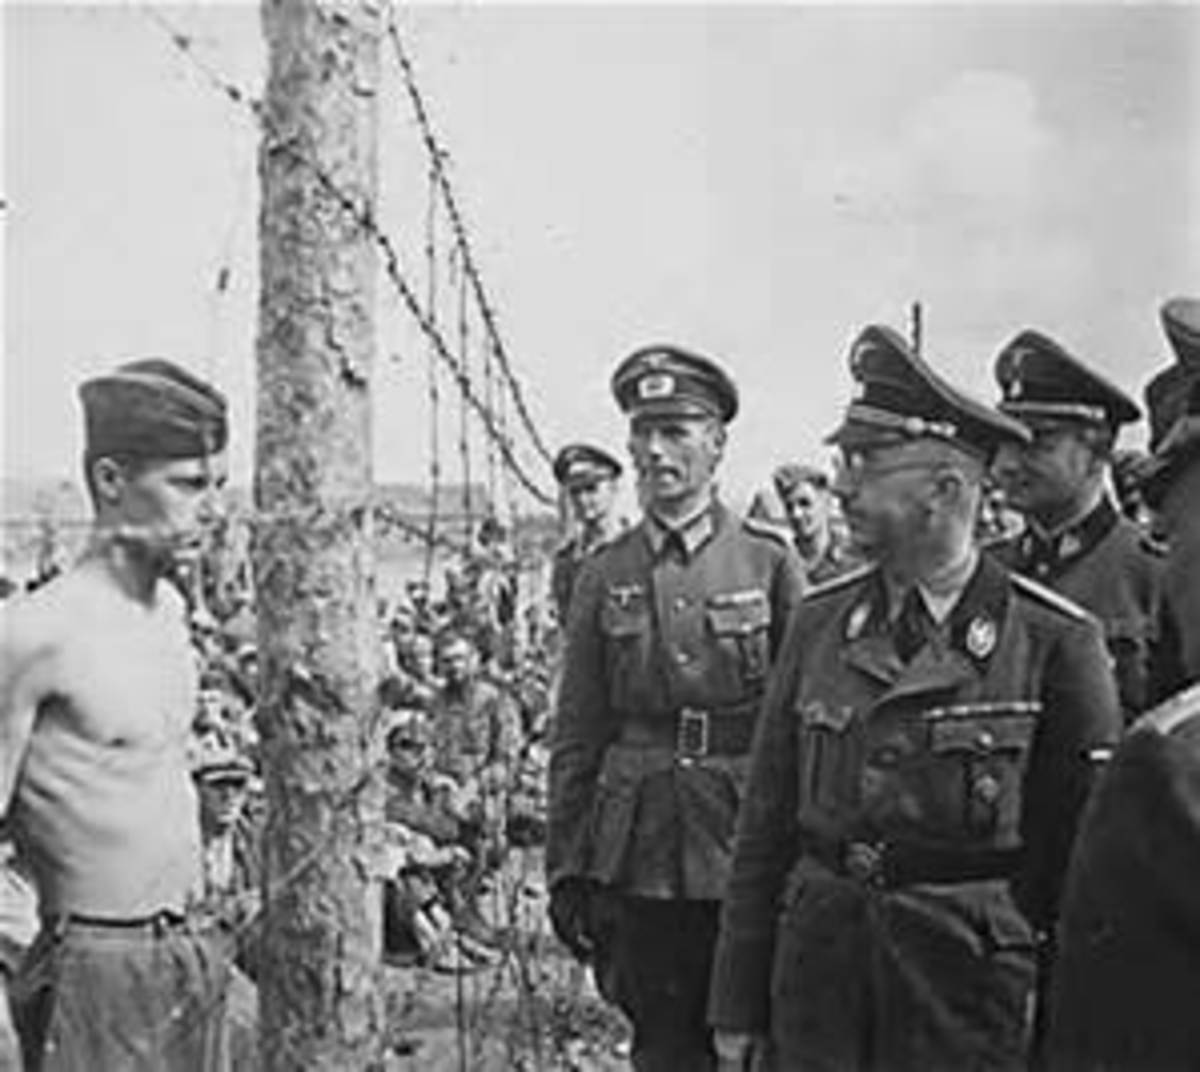 British soldier showing complete contempt for the murderous rat Himmler